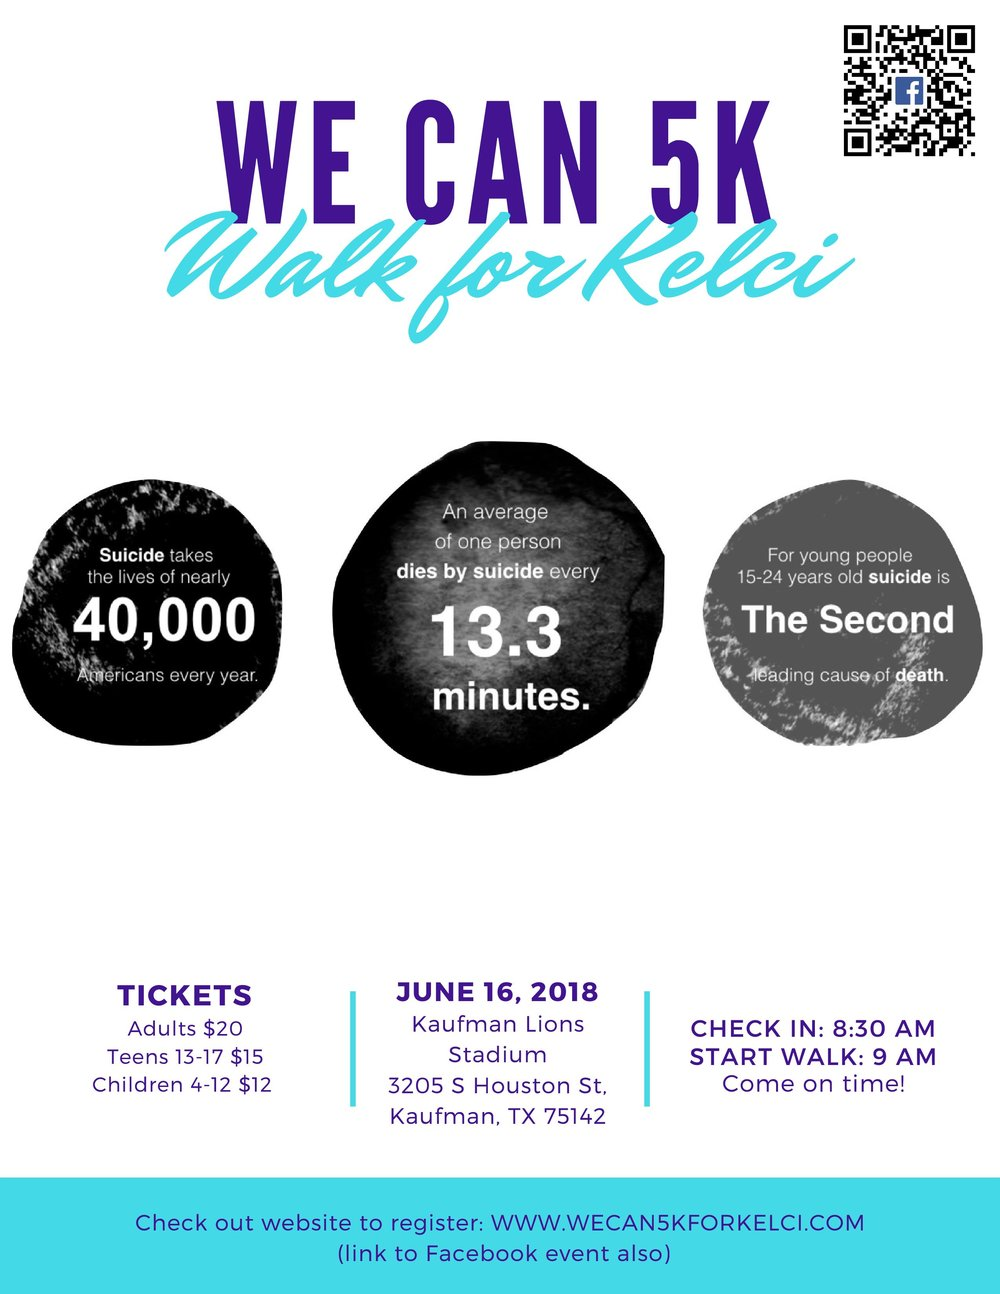 We can for kelci Walk 6-16-18-page-001.jpg